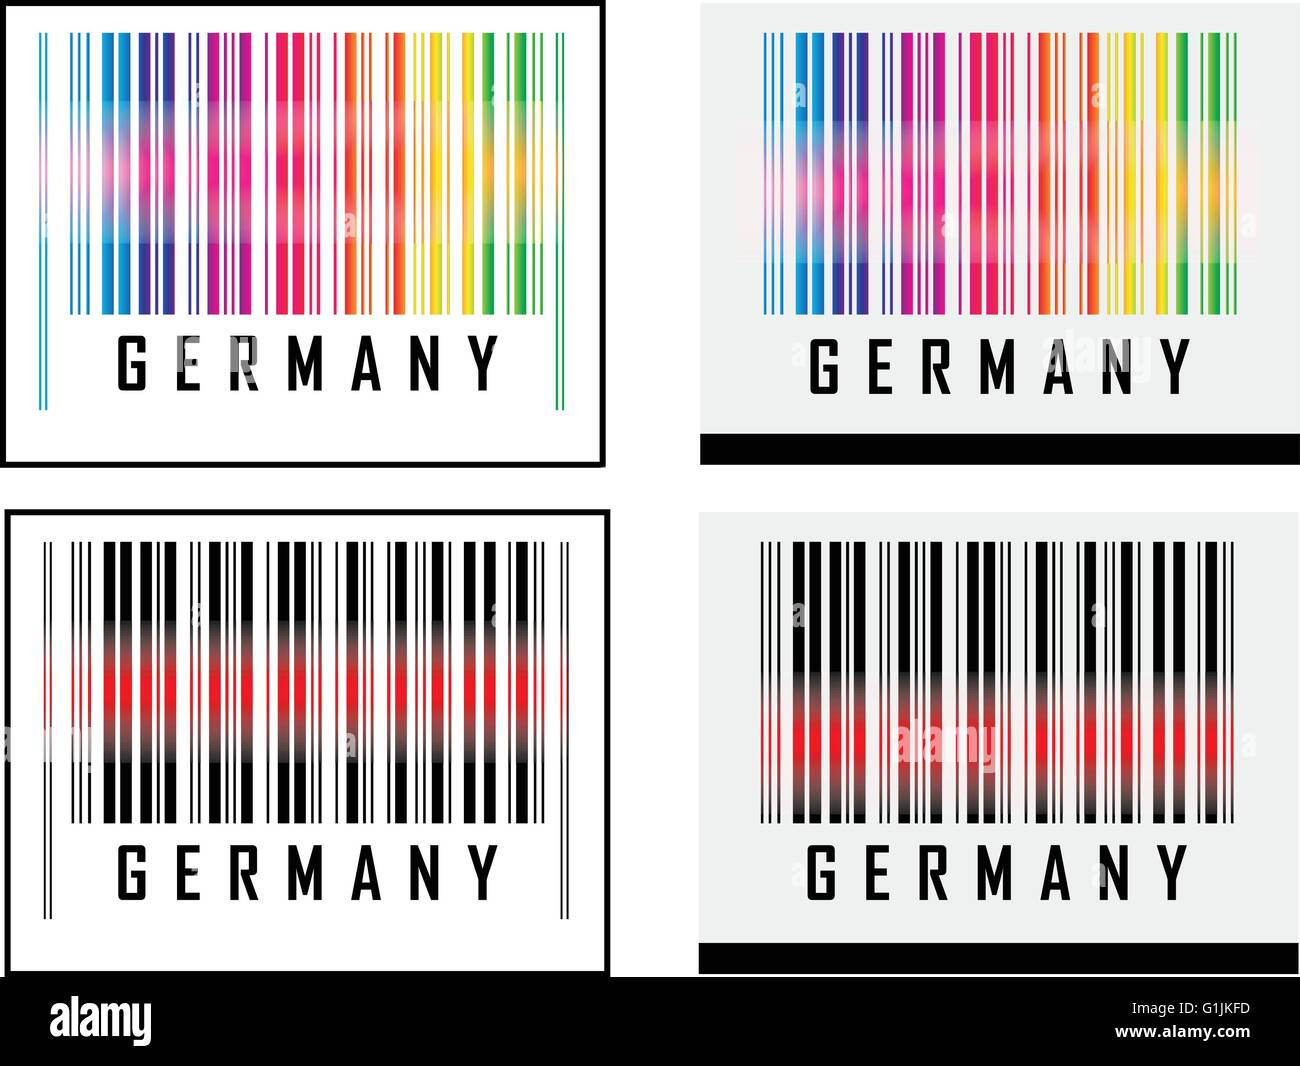 eps 10 vector illustration of barcode or bar code icon and red laser